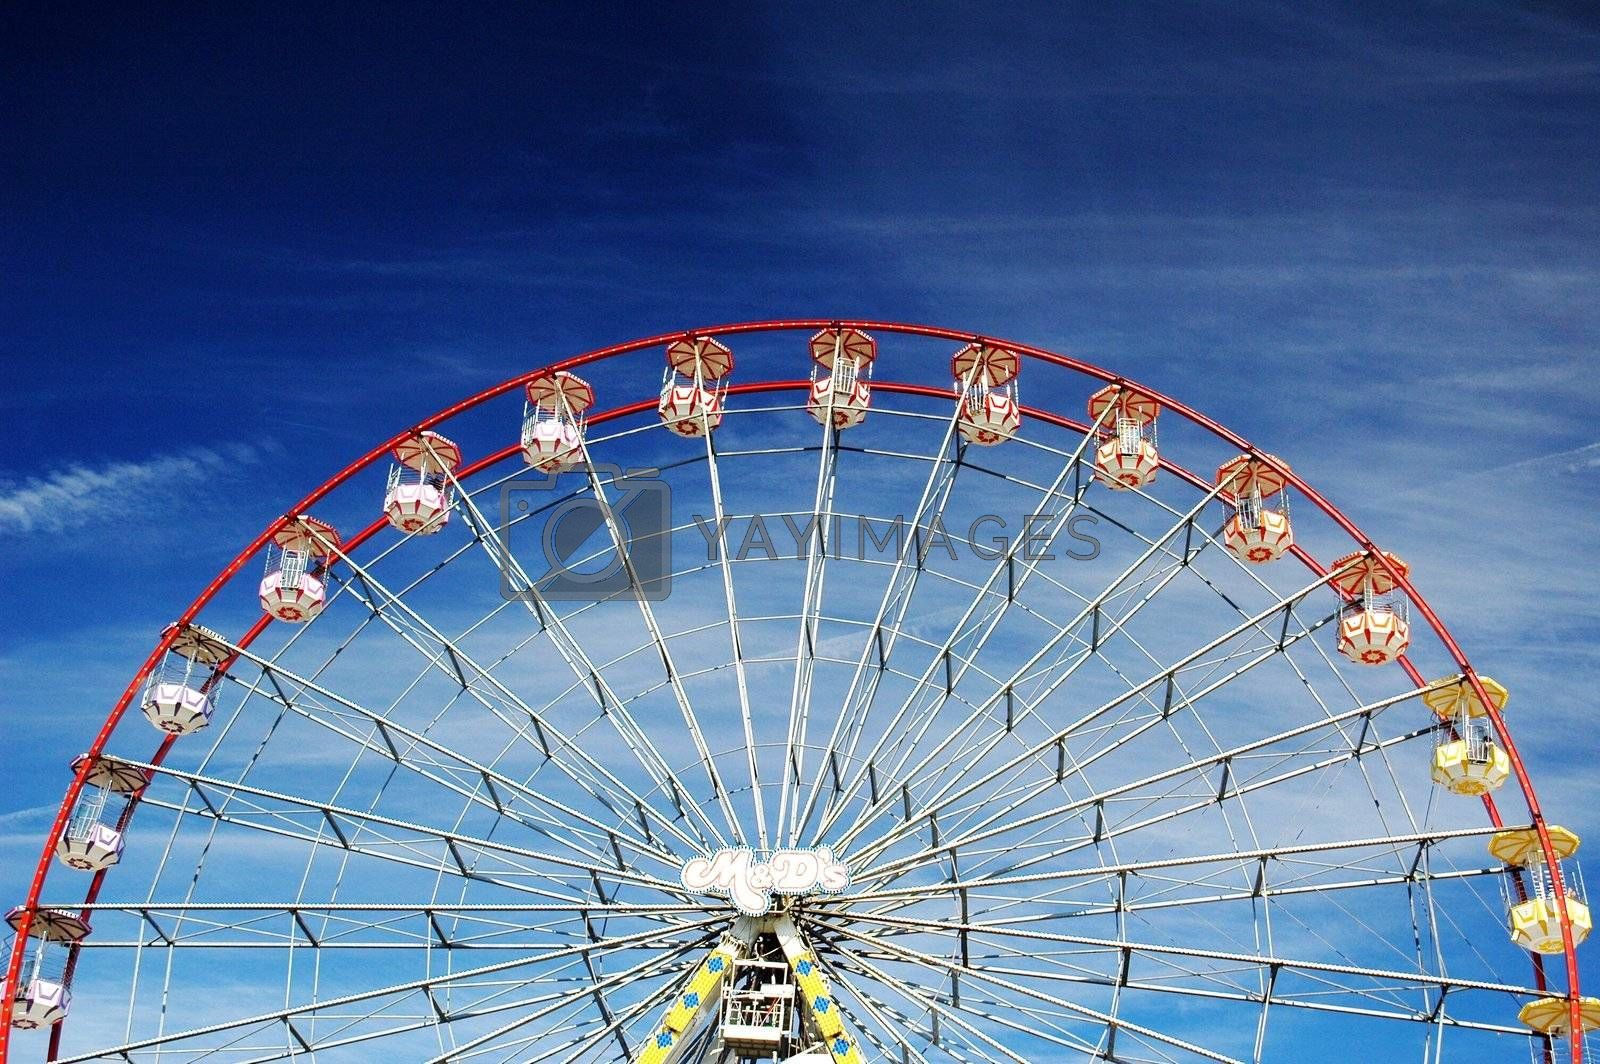 big wheel in cardiff bay in nice summer day with blue sky covered by clouds